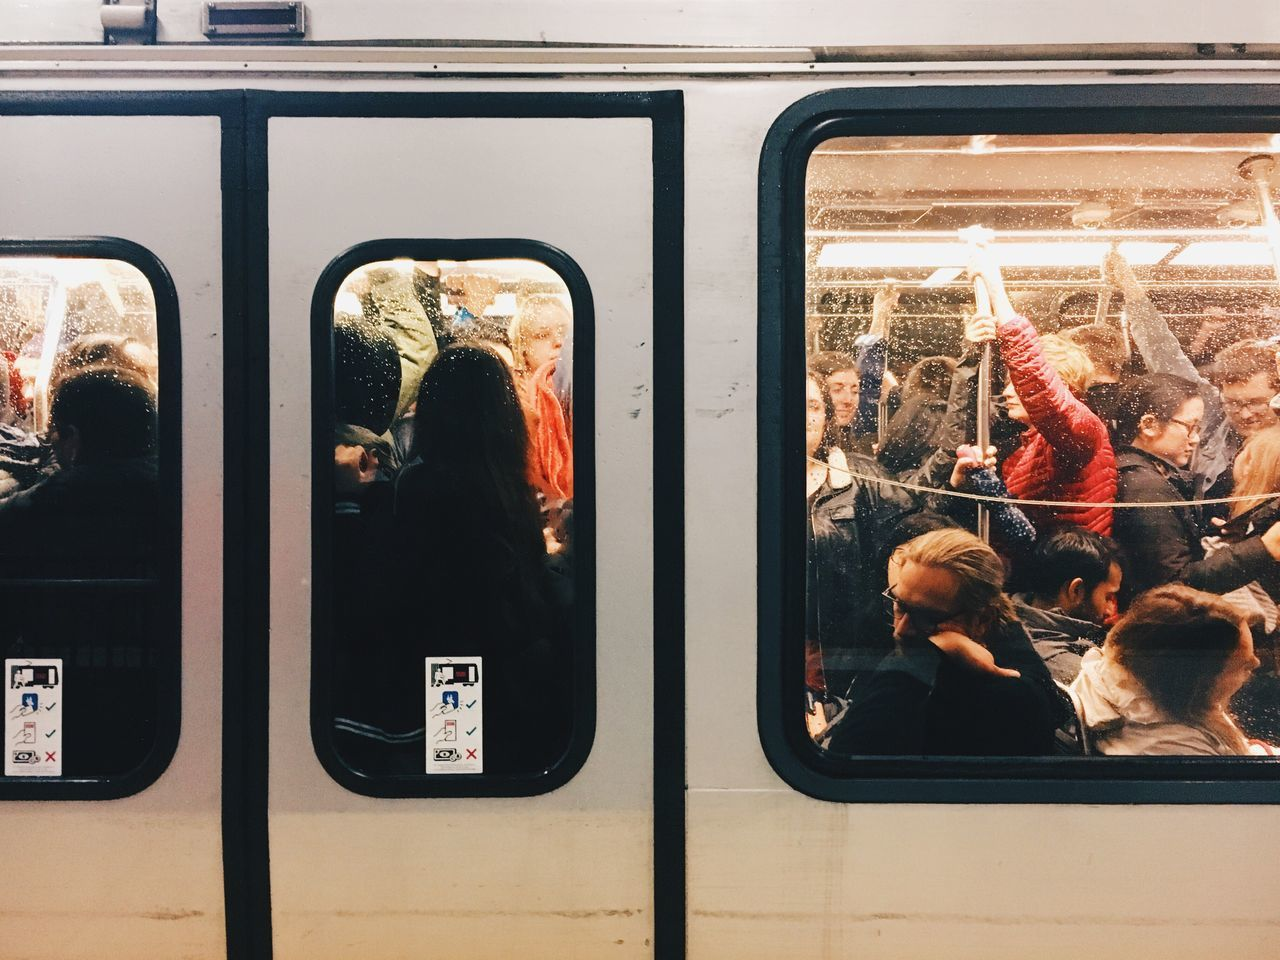 Transportation Mode Of Transport Window Real People Passenger Public Transportation Men Day Indoors  One Person MUNI Crowded Women's March Womensmarch San Francisco Adapted To The City